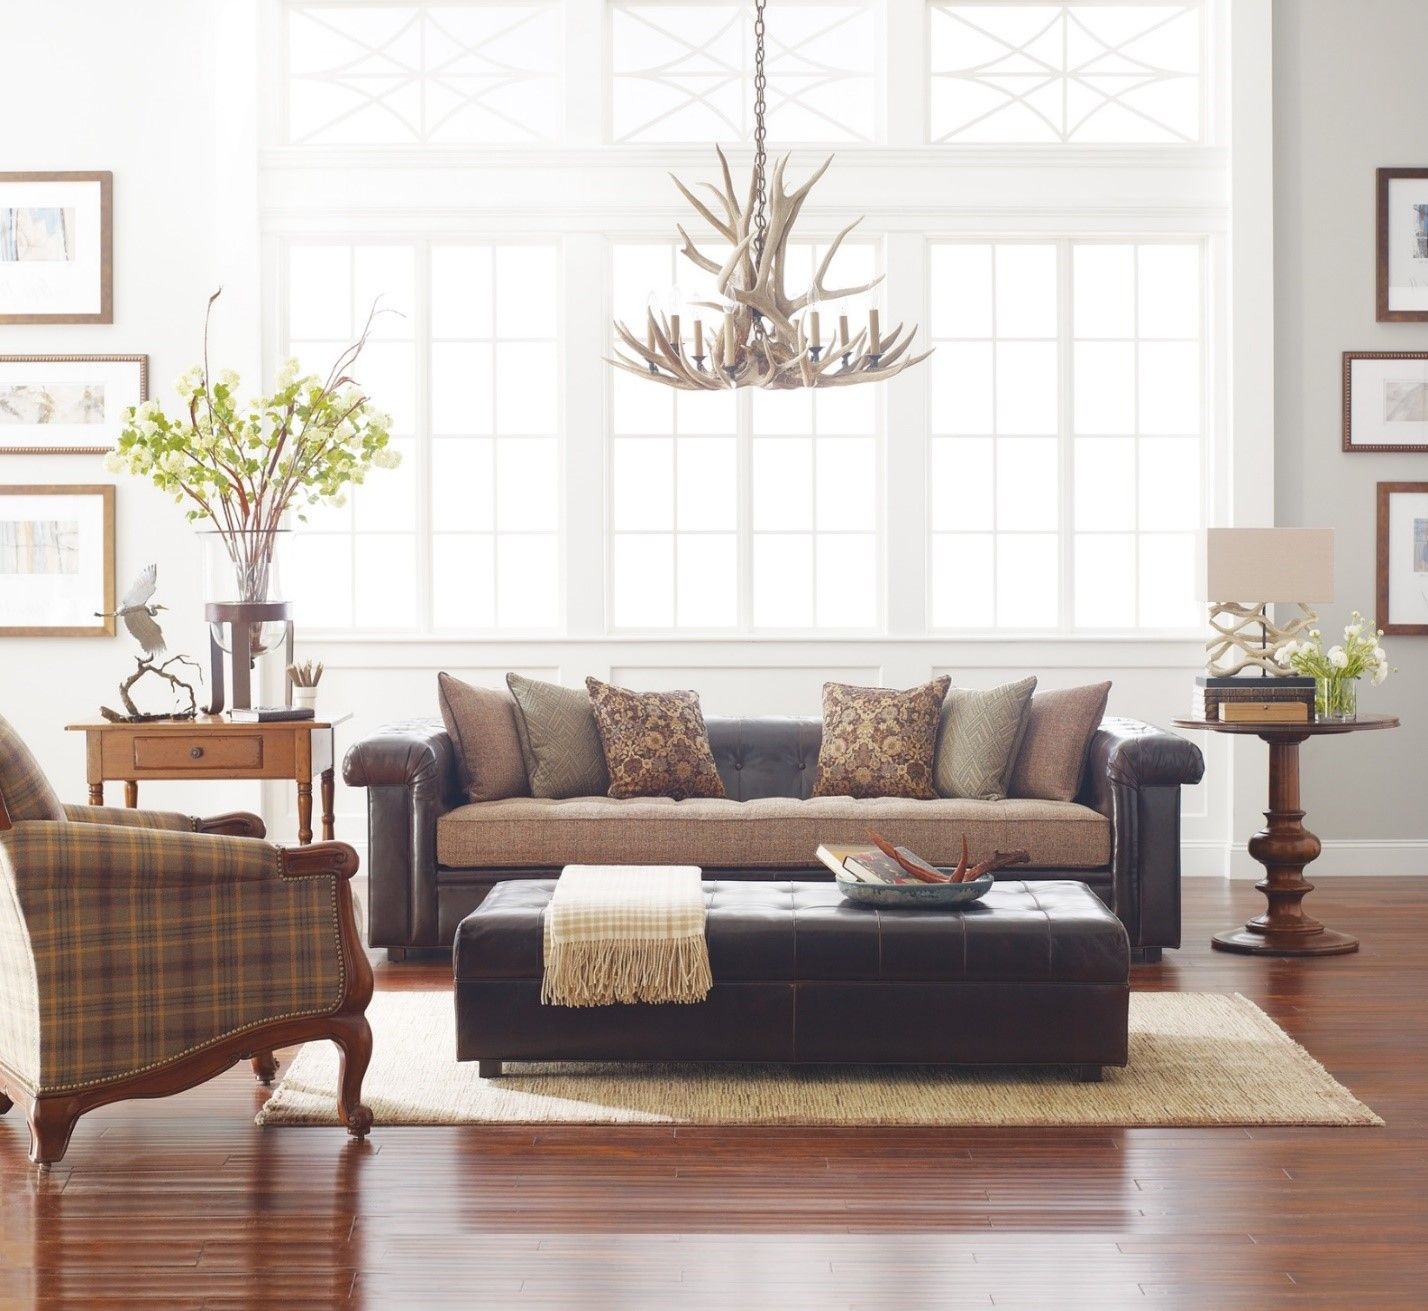 Amazing Stickley   One Of Americau0027s Finest Luxury Furniture Brands   Is Now  Available In Our Laguna